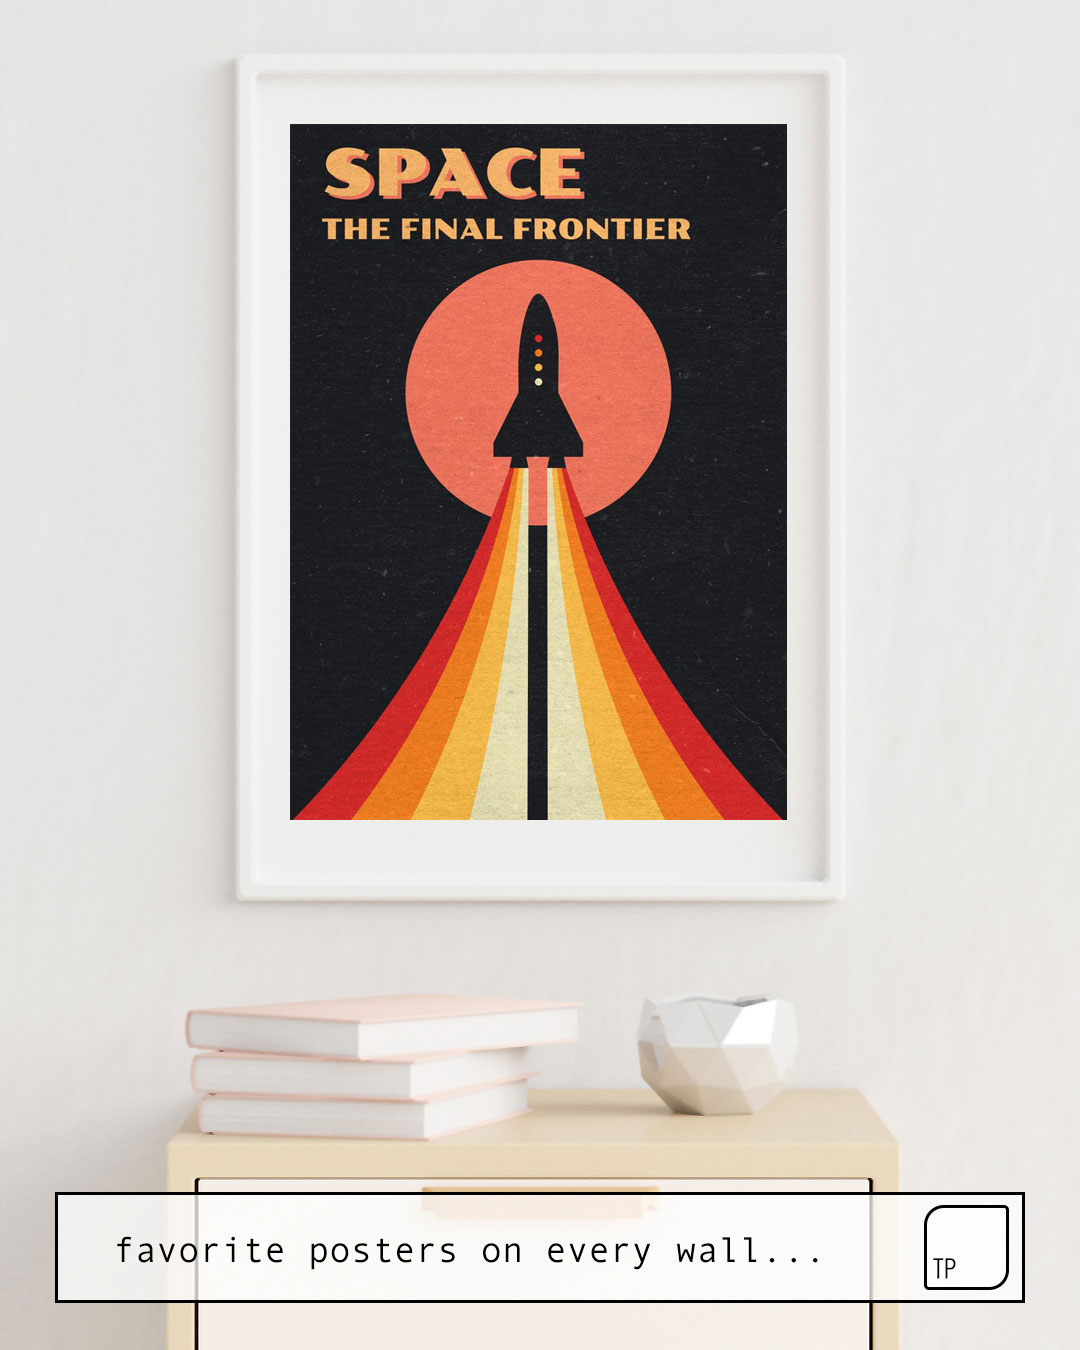 Poster | SPACE – THE FINAL FRONTIER by Andreas Lie